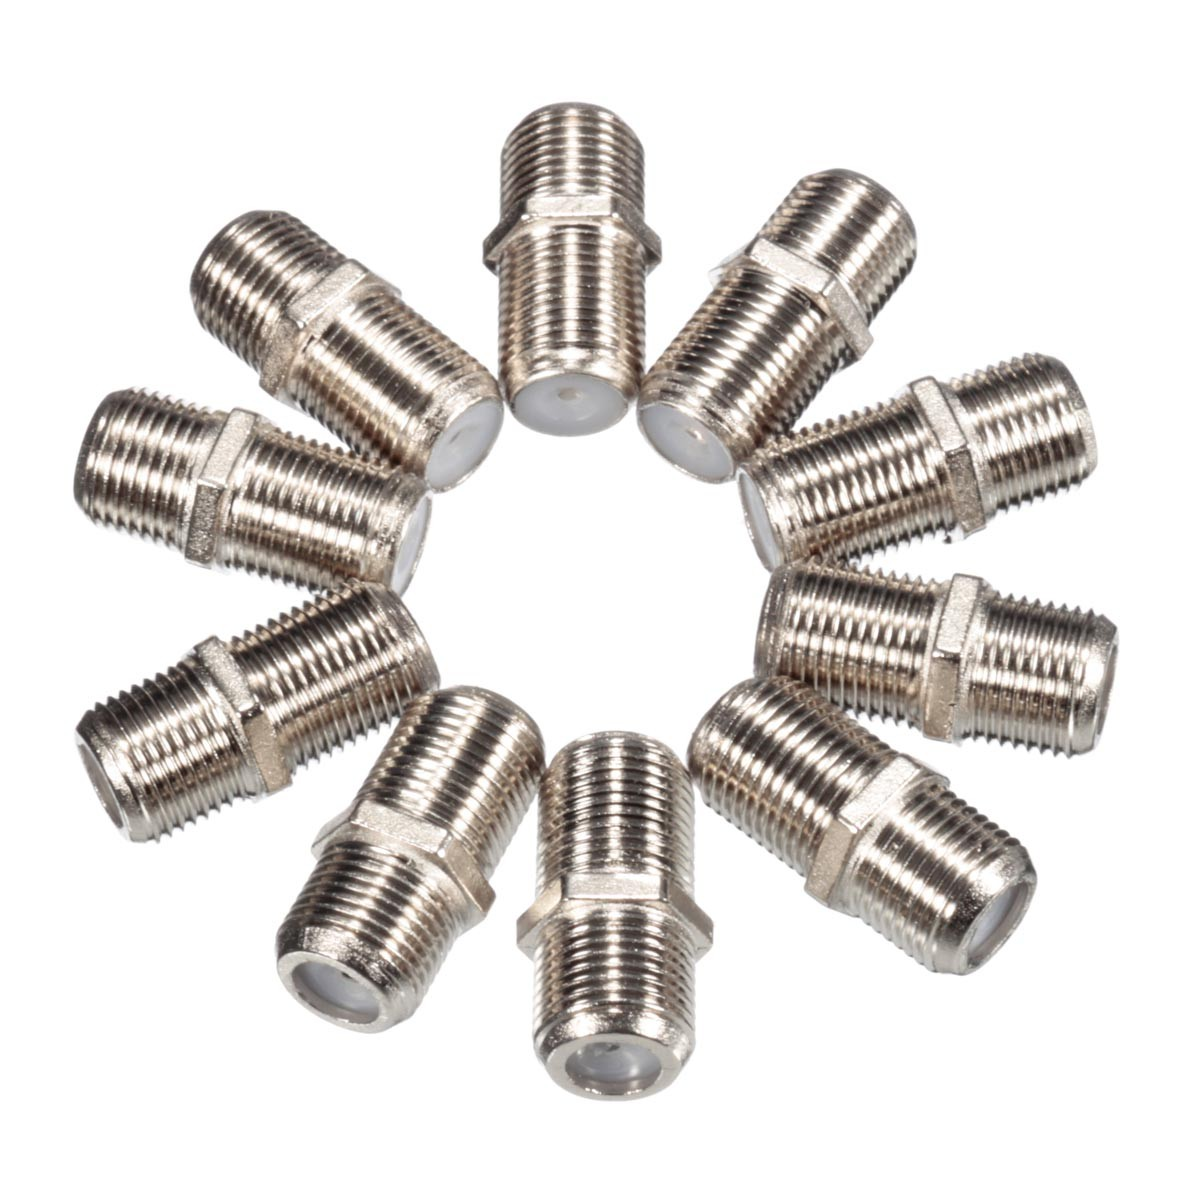 10 Pcs Joiner Barrels Connector F Plug Coupler Adapter 4 Sky Plus HD TV Coax Cable